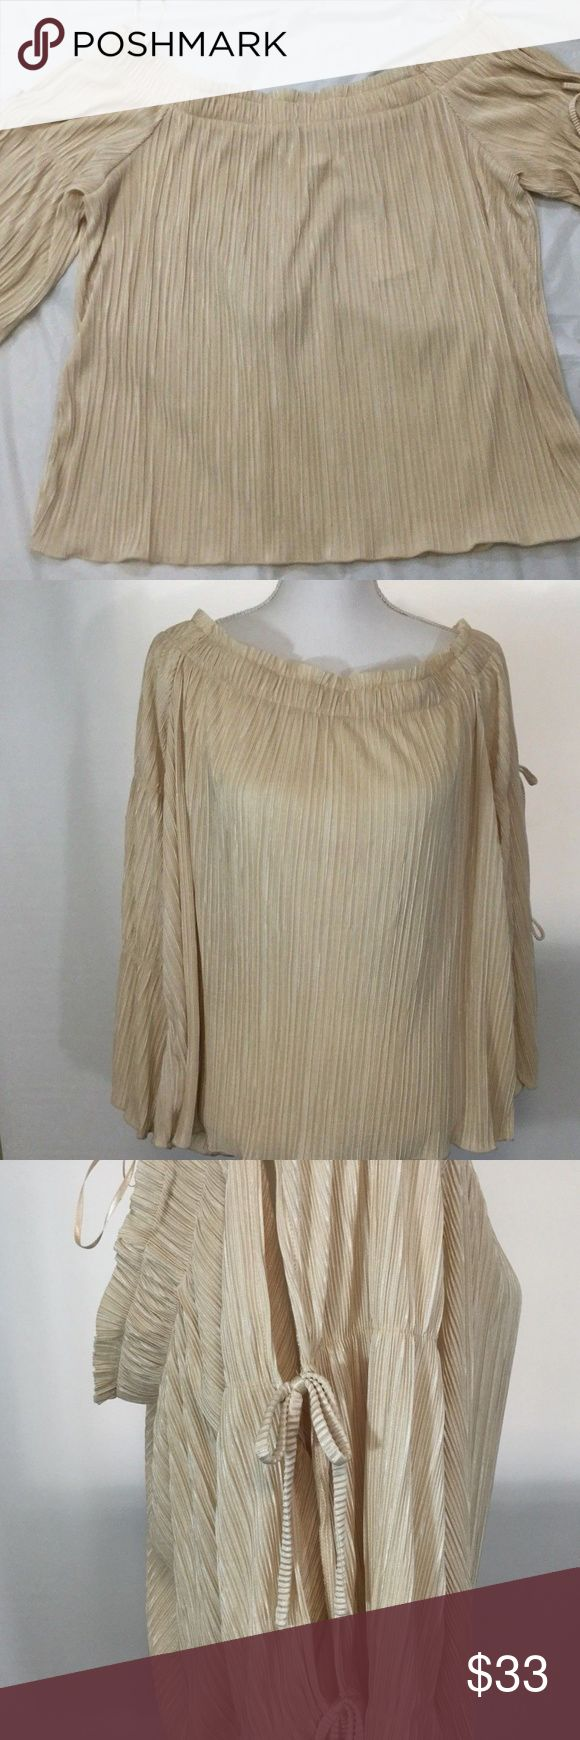 Lauren Conrad Womens Blouse XXL Cold Shoulder A beautiful Lauren Conrad Ladies Off the shoulder style Blouse size XXL  The sleeves are a split style  It is a light tan or ivory color  Please see all of the pictures and ask any questions that you may have  The blouse measures approx.. 25 inches across the chest laying flat not stretched out  It is 21 inches long LC Lauren Conrad Tops Blouses